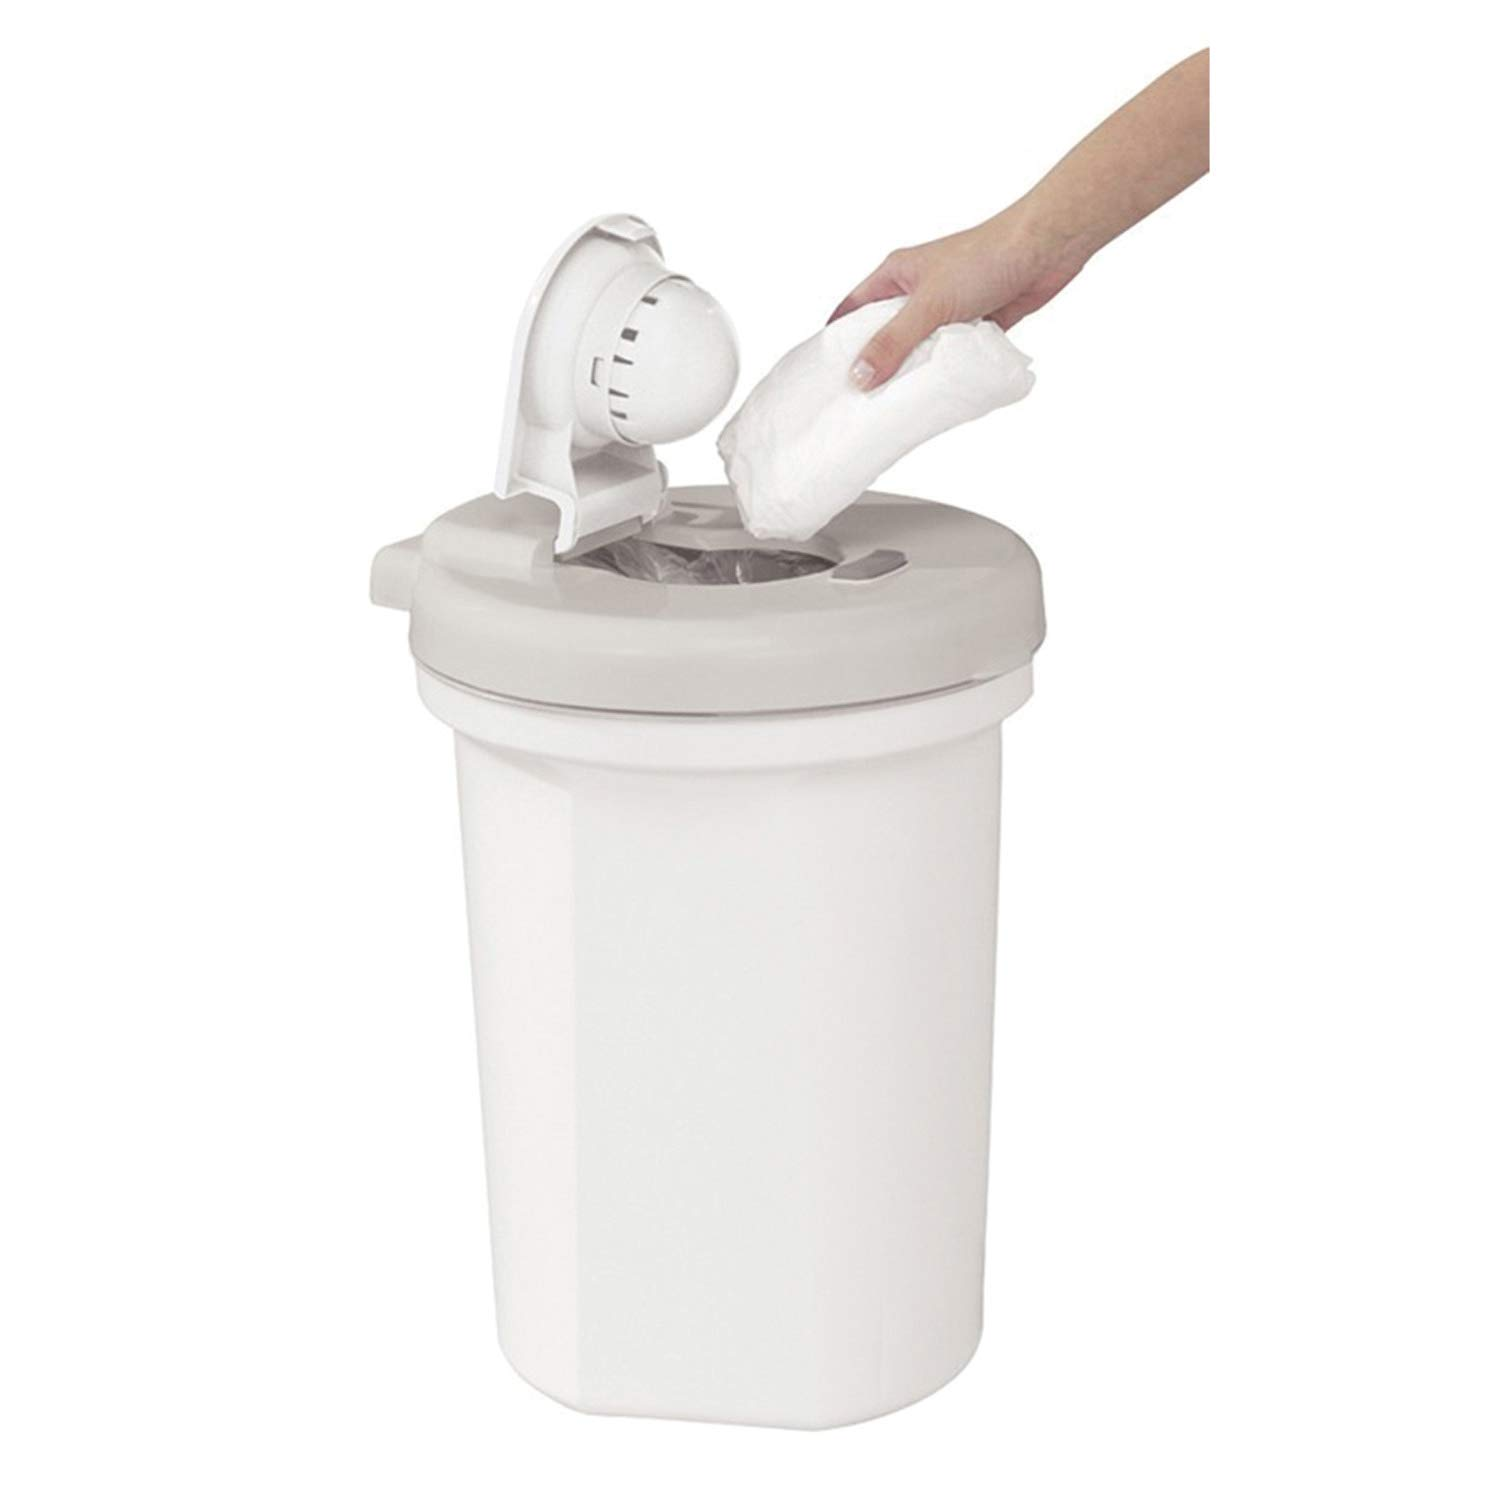 Best Diaper Pail for Cloth Diapers – Reviews & Buying Guide 2020 3